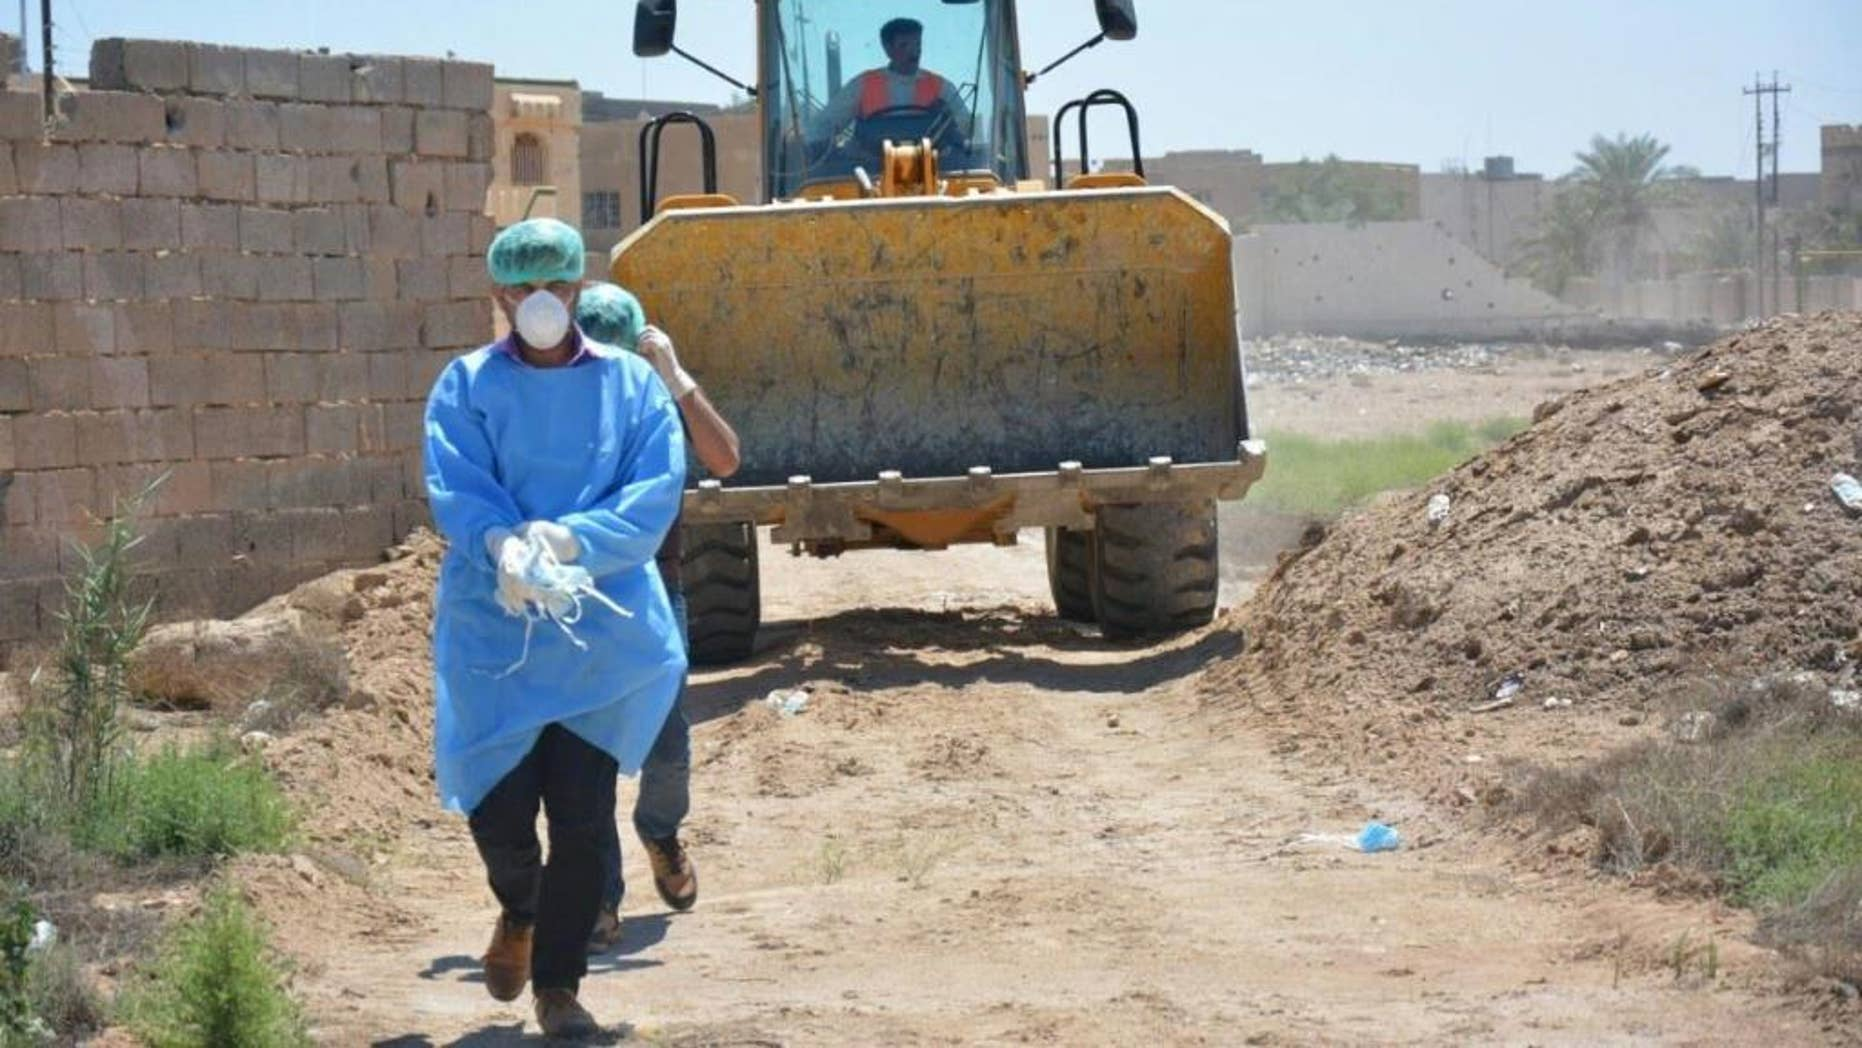 An Iraqi security forces forensic team works at at the site of a mass grave, one of two discovered containing the bodies of dozens of men, women and children killed by Islamic State group militants, in the stadium area in Ramadi, 115 kilometers (70 miles) west of Baghdad, Iraq, Tuesday, April 19, 2016. (AP Photo)